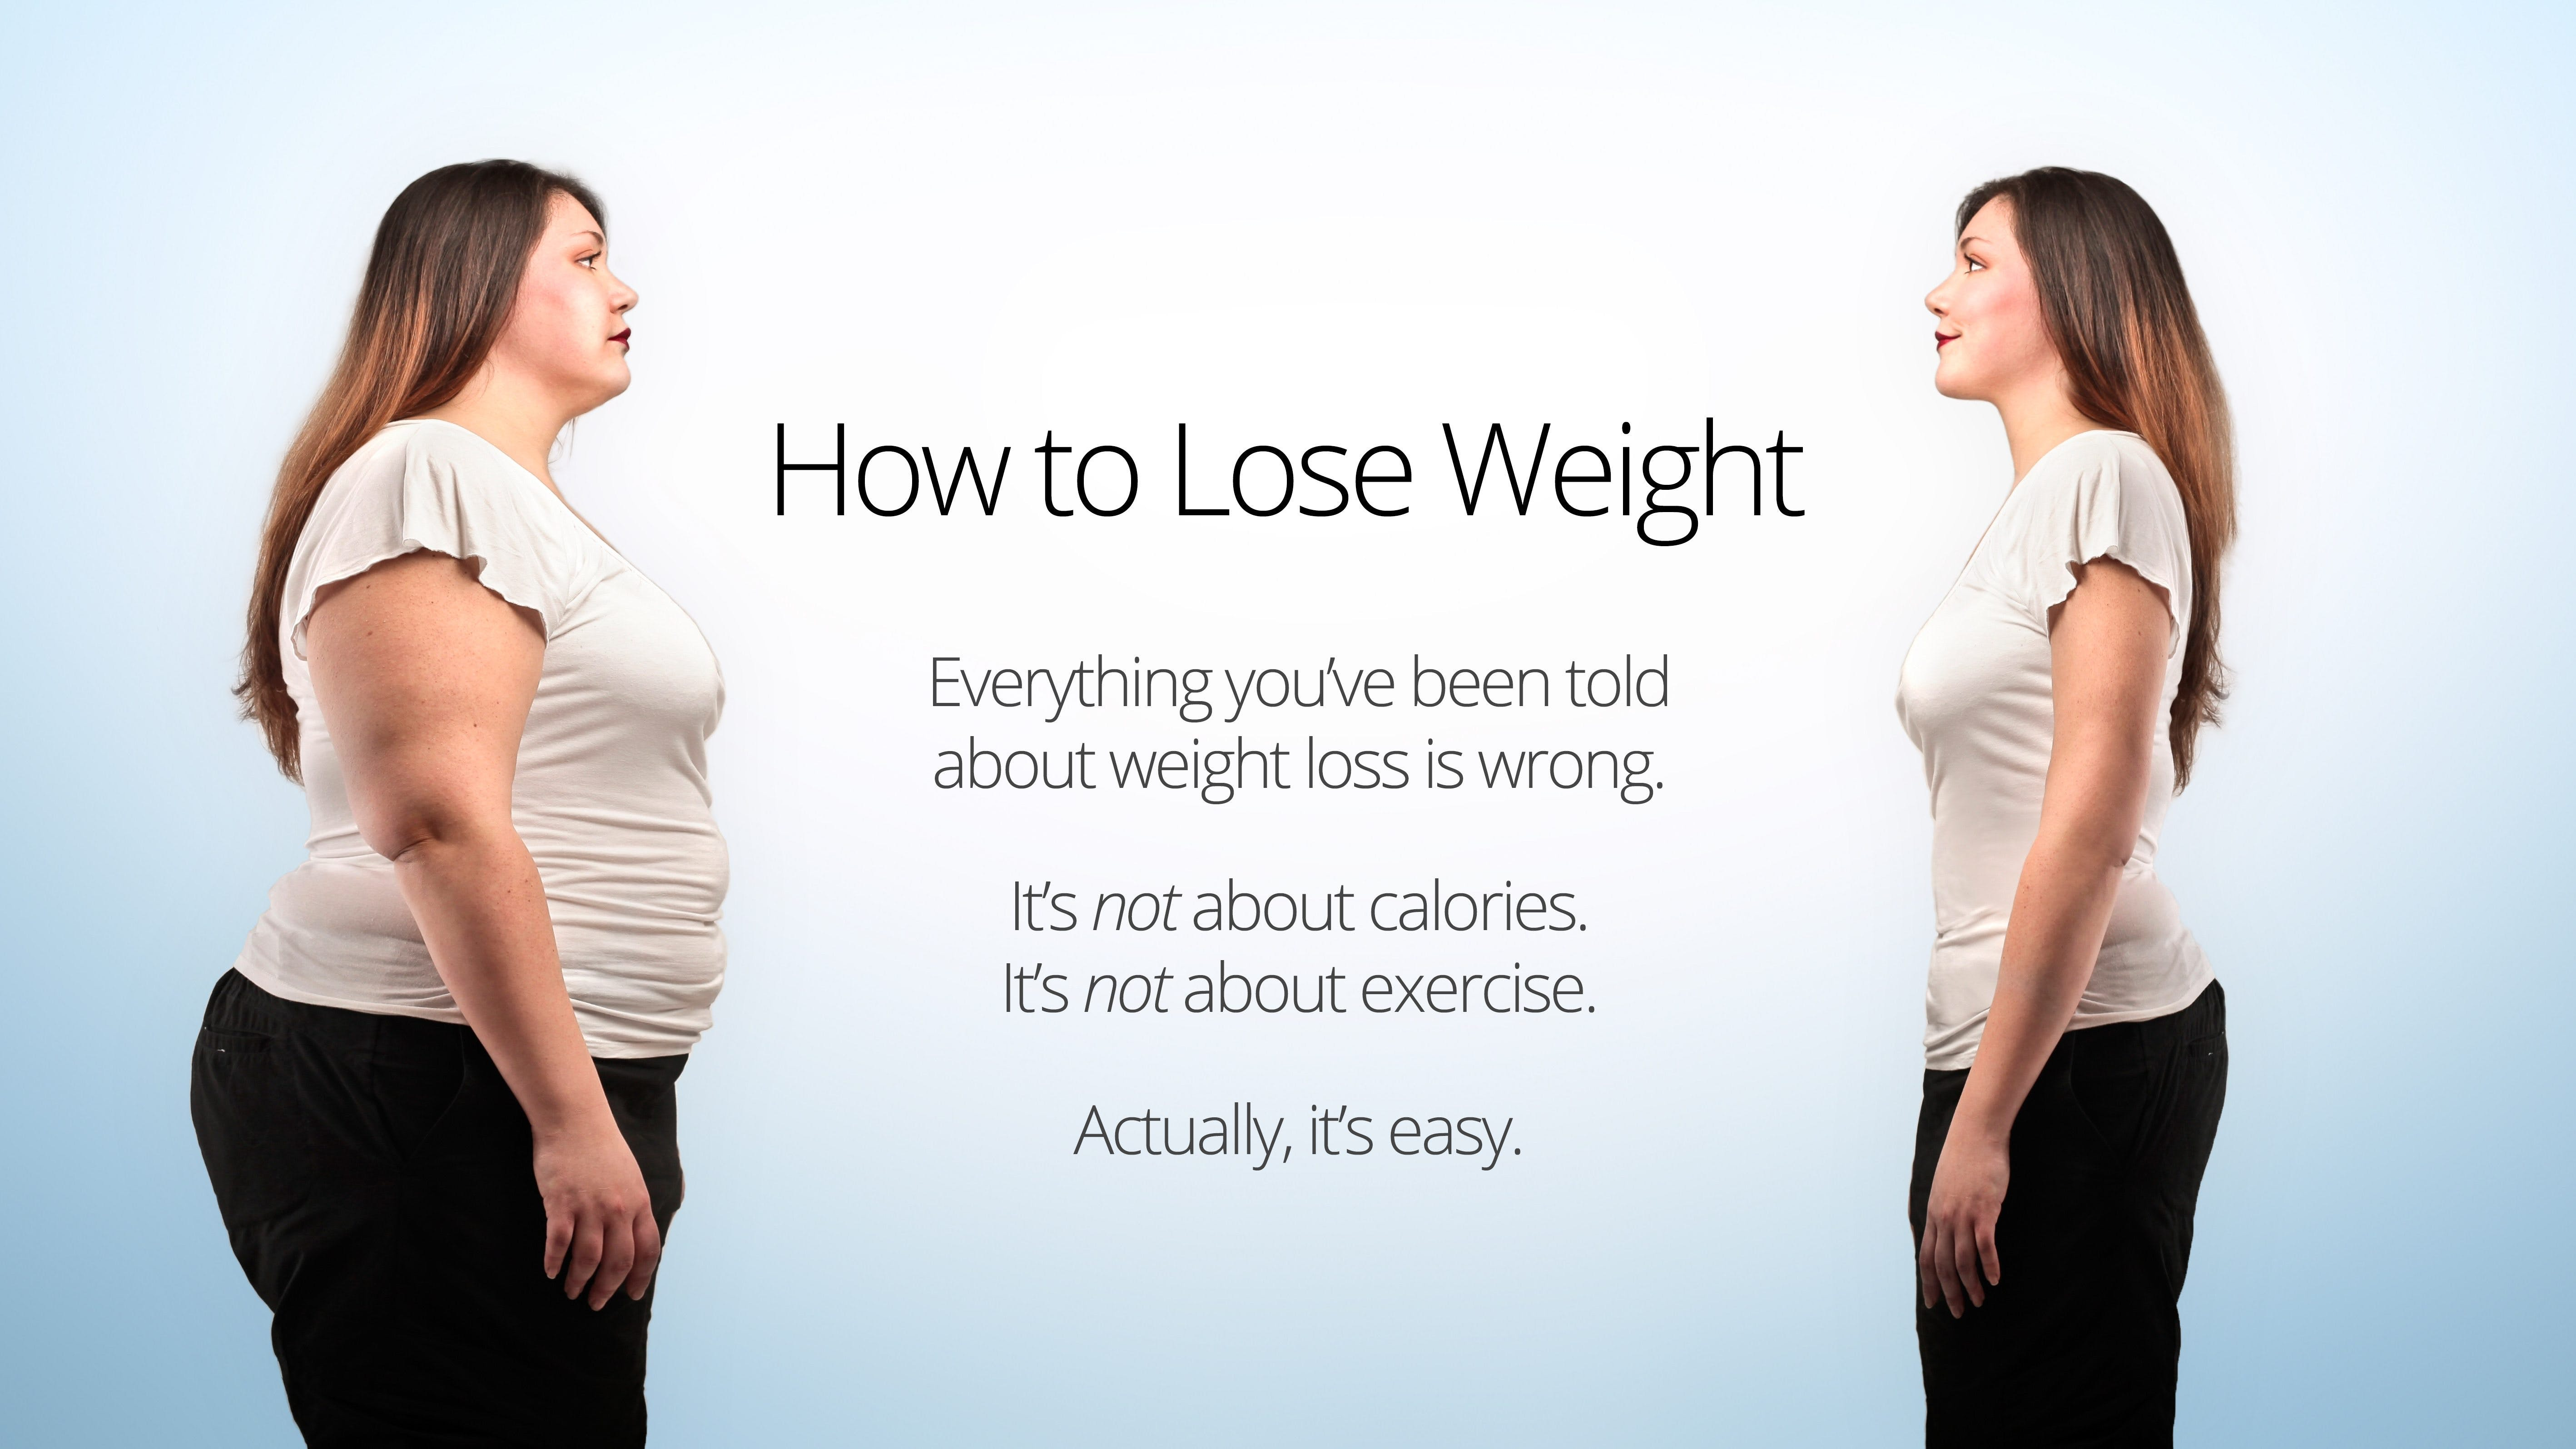 How to Lose Weight. Everything you've been told about weight loss is wrong. It's not about calories. It's not about exercise. Actually, it's easy.